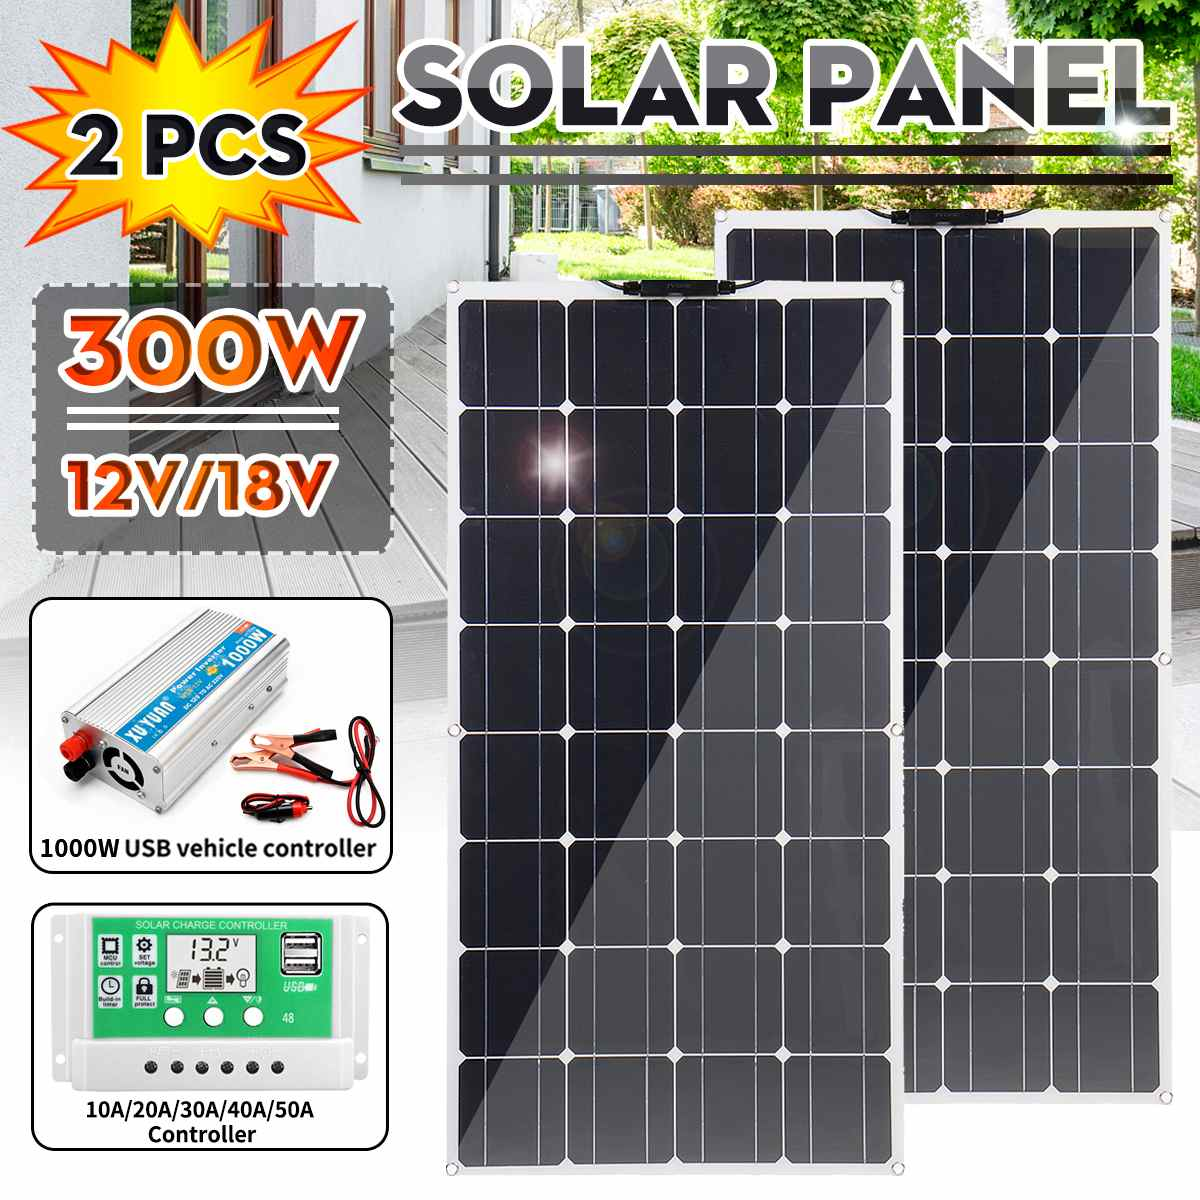 150/300W Monocrystalline Solar Panel Dual USB With 50A/40A/30A Controller 1000W Power Inverter Vehicle RV Marine Battery Charger